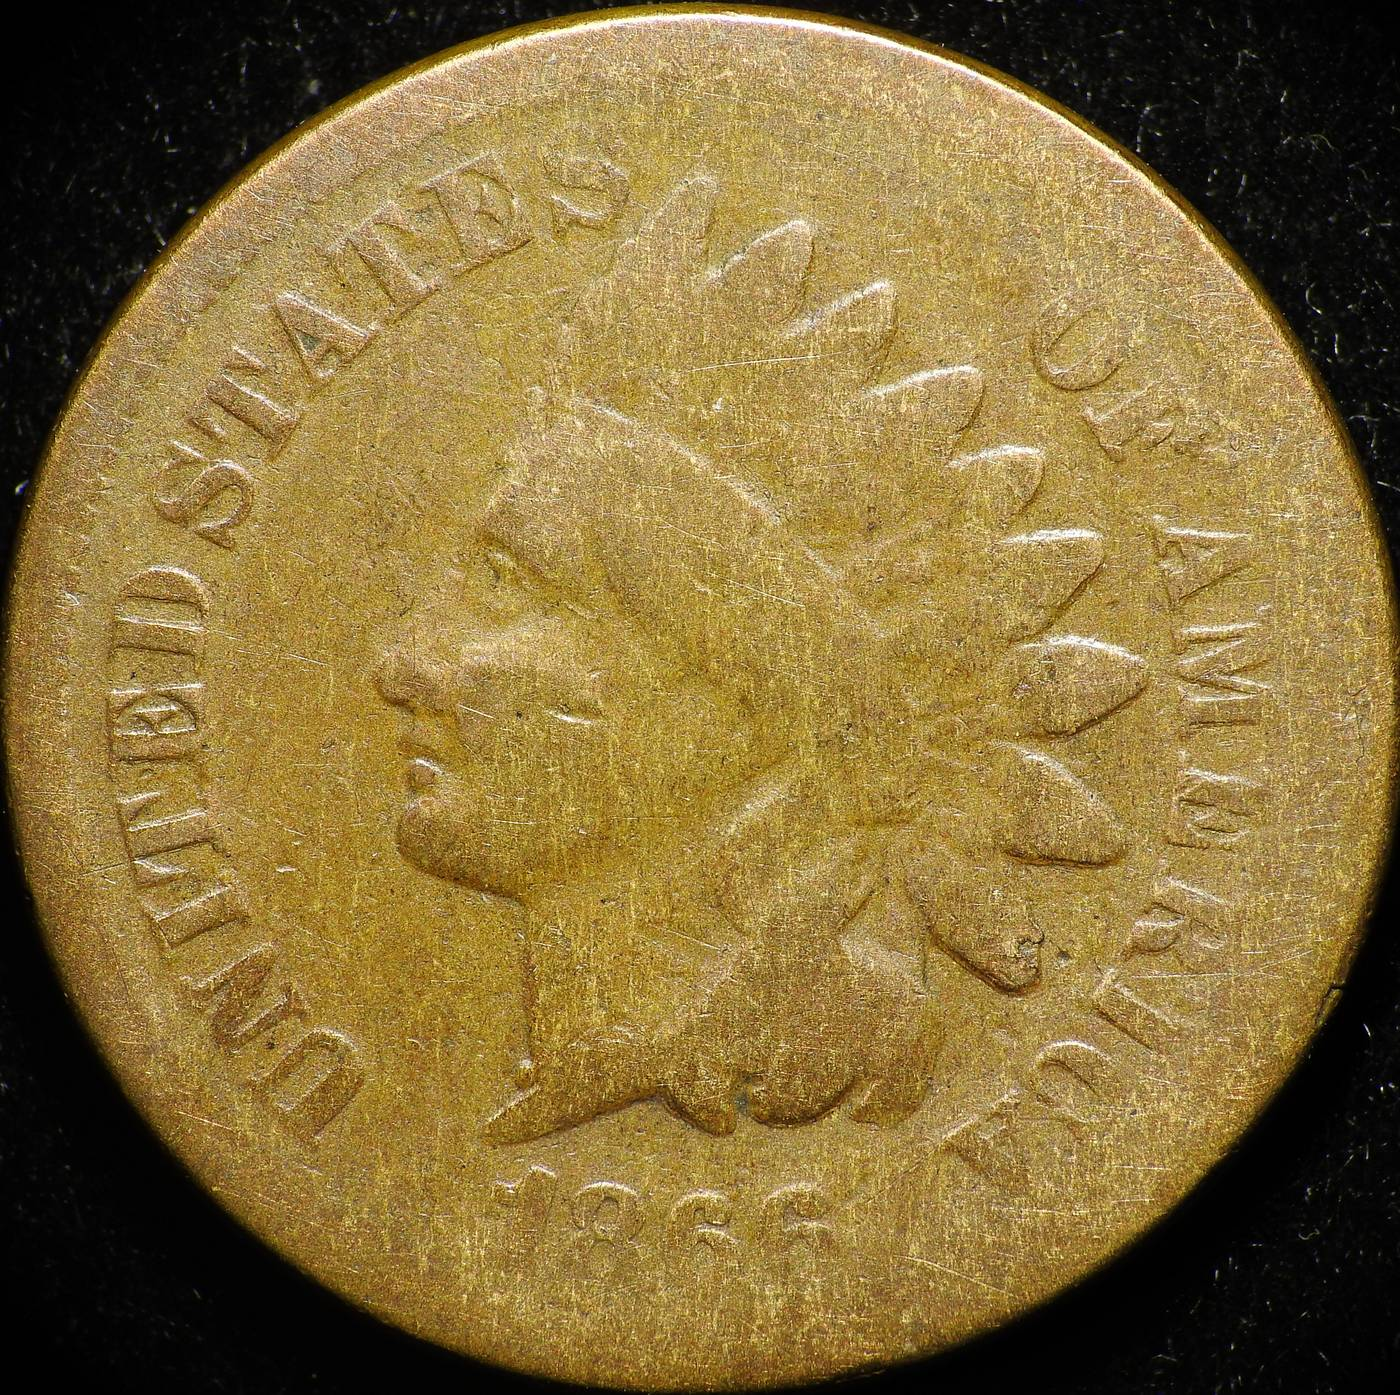 1866 Obverse of ODD-001 - Indian Head Penny